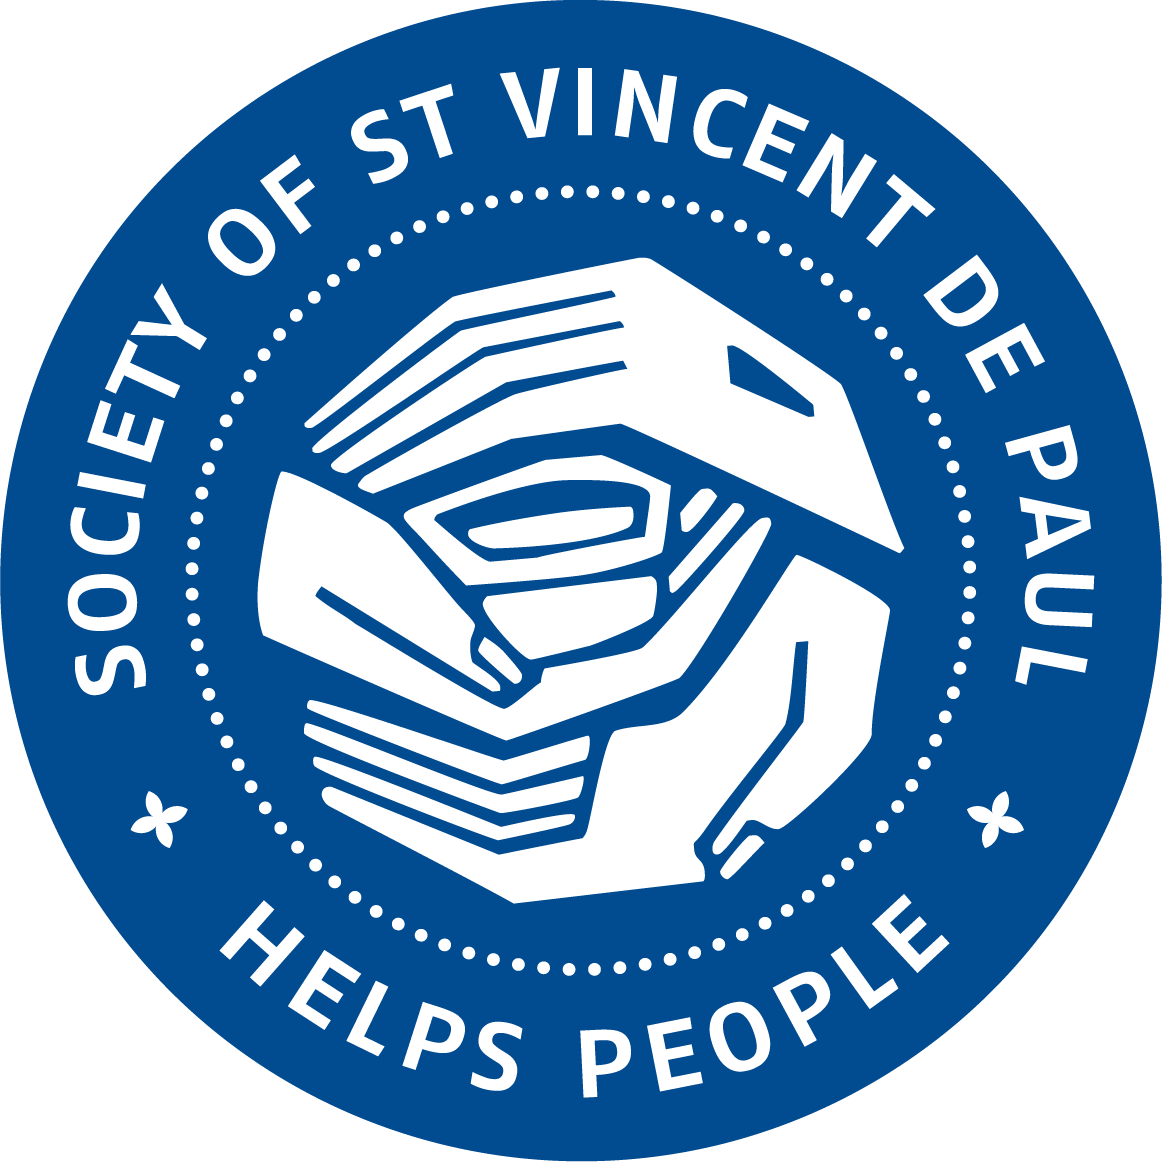 St Vincent de Paul Society New Zealand